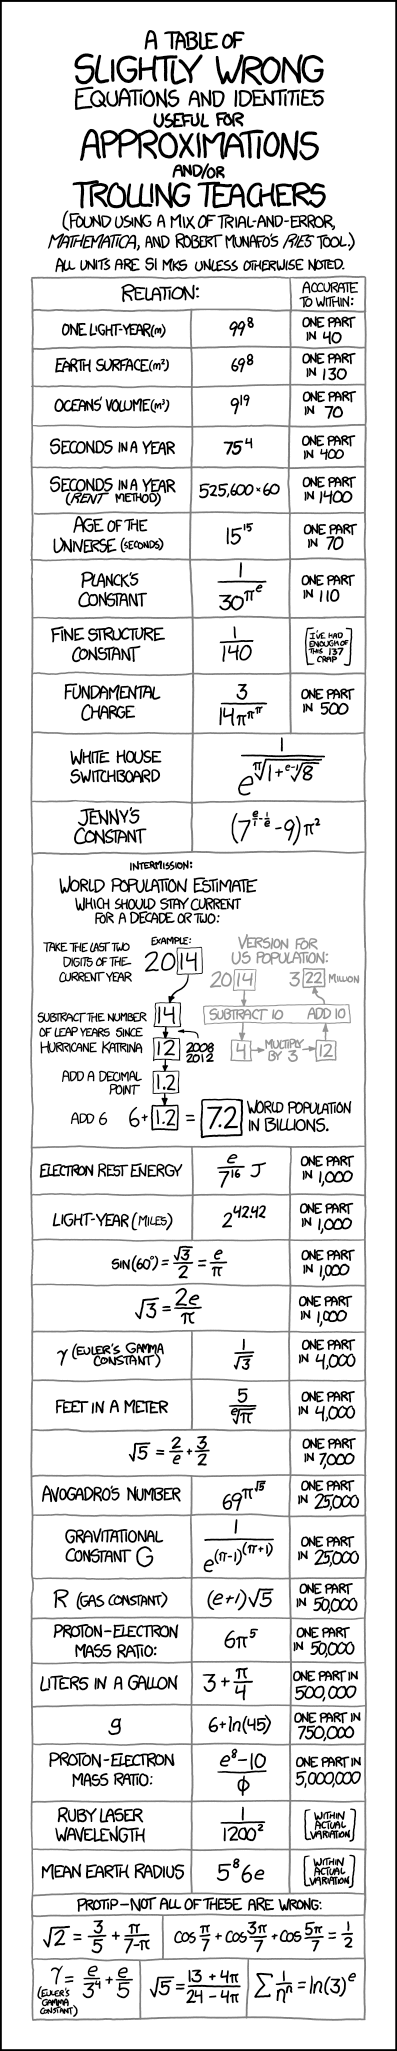 small resolution of xkcd old xkcd flowingdata